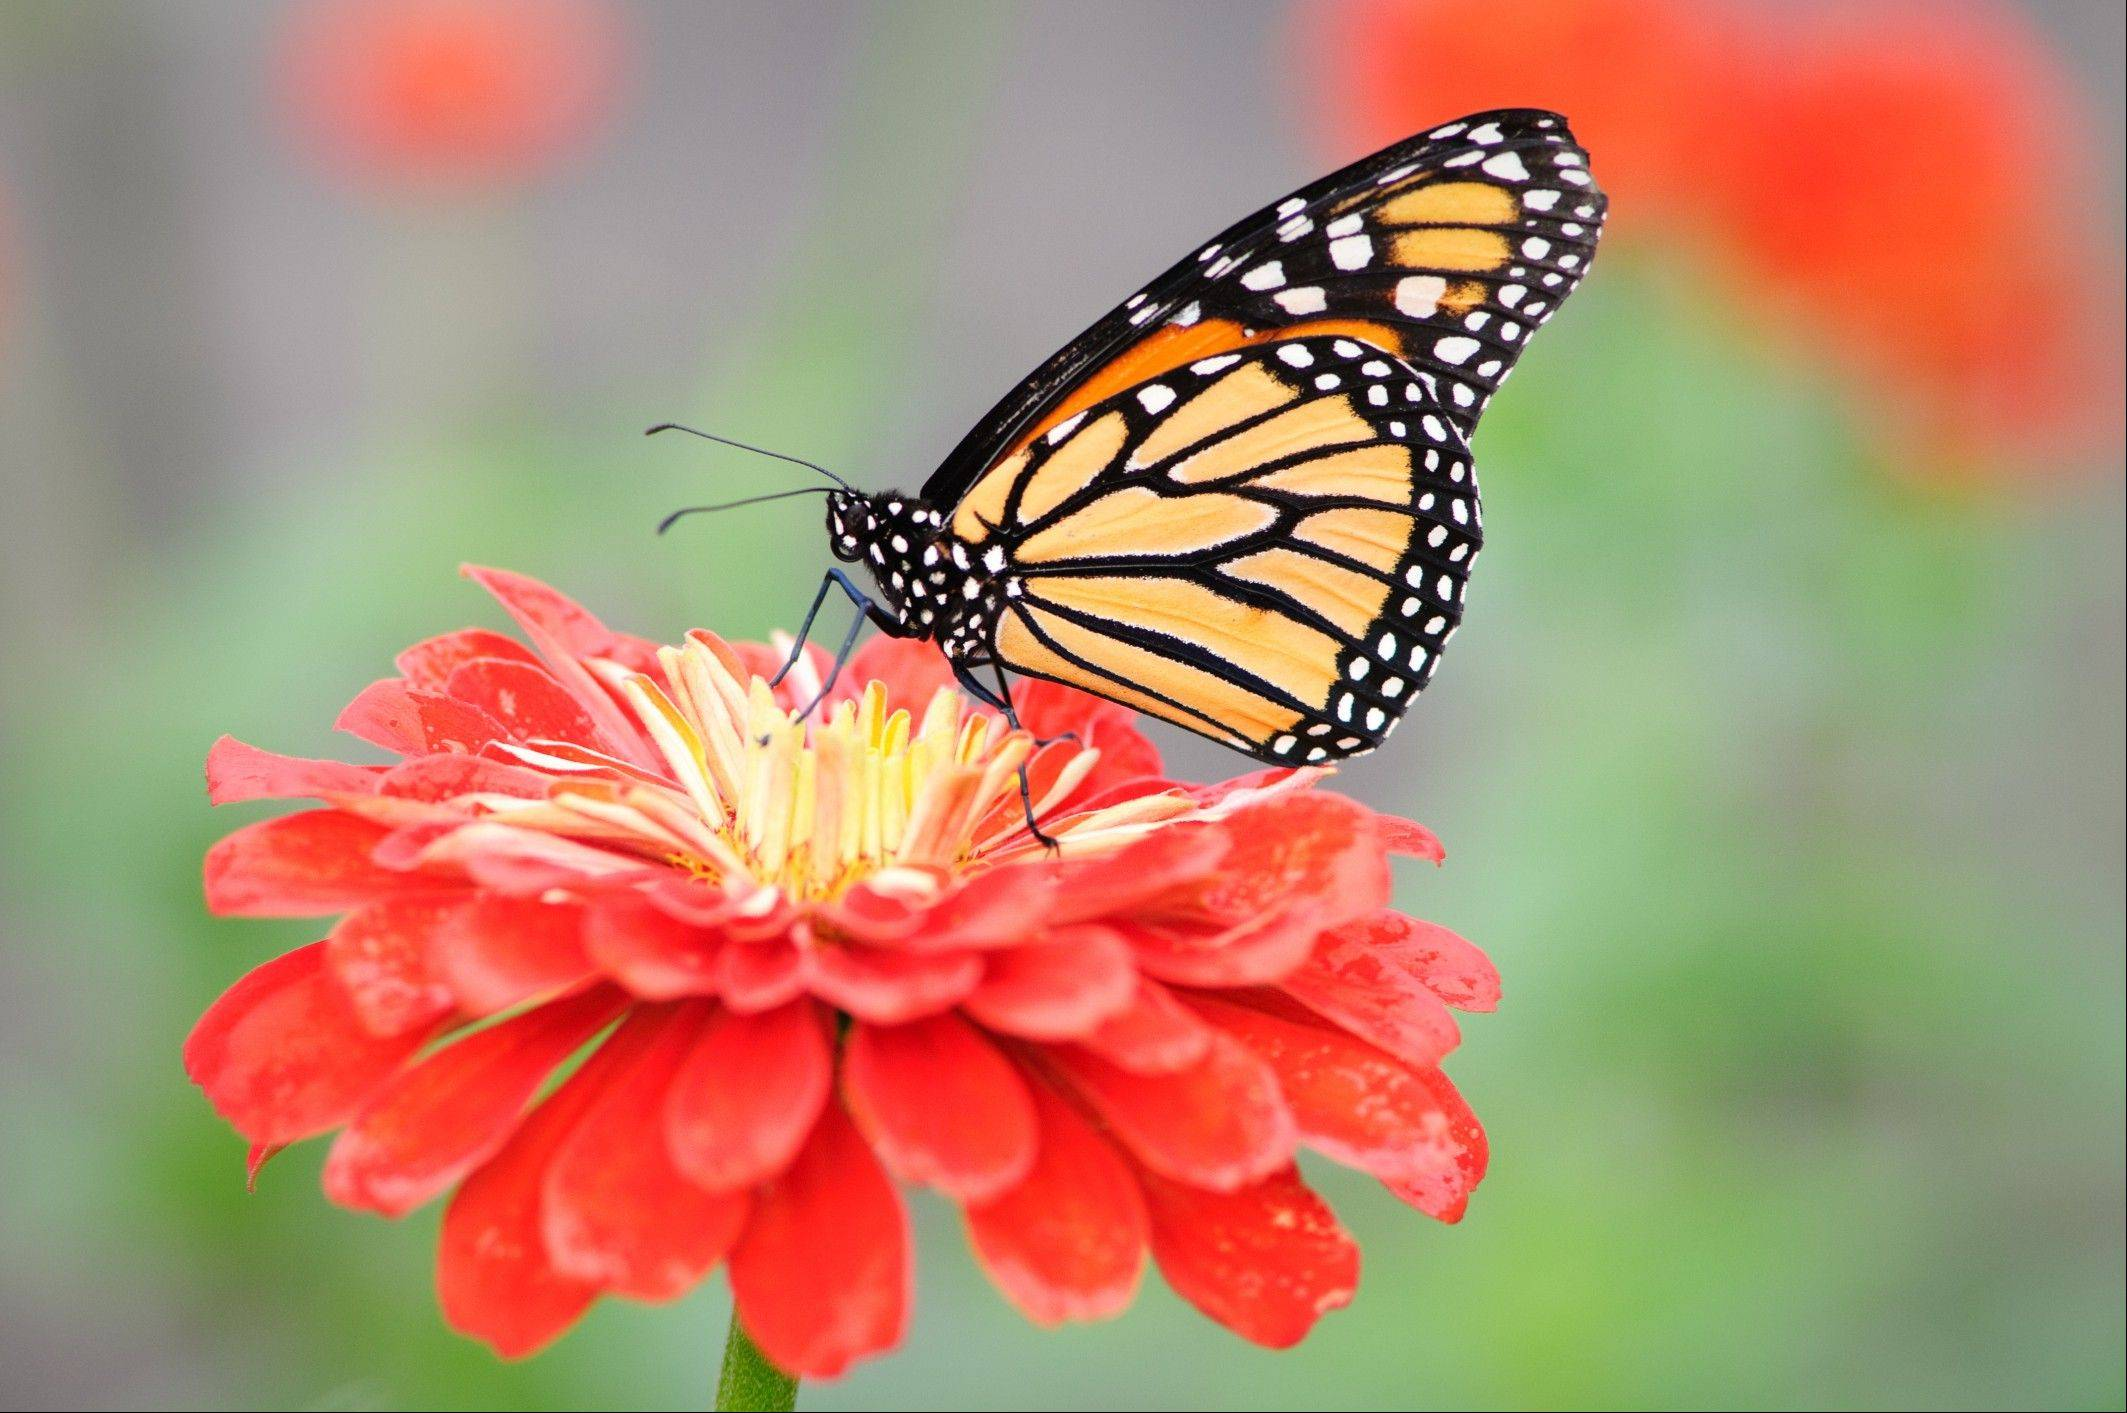 The Chicago Botanic Garden in Glencoe opens up its Butterflies & Blooms outdoor garden on Saturday, June 2.